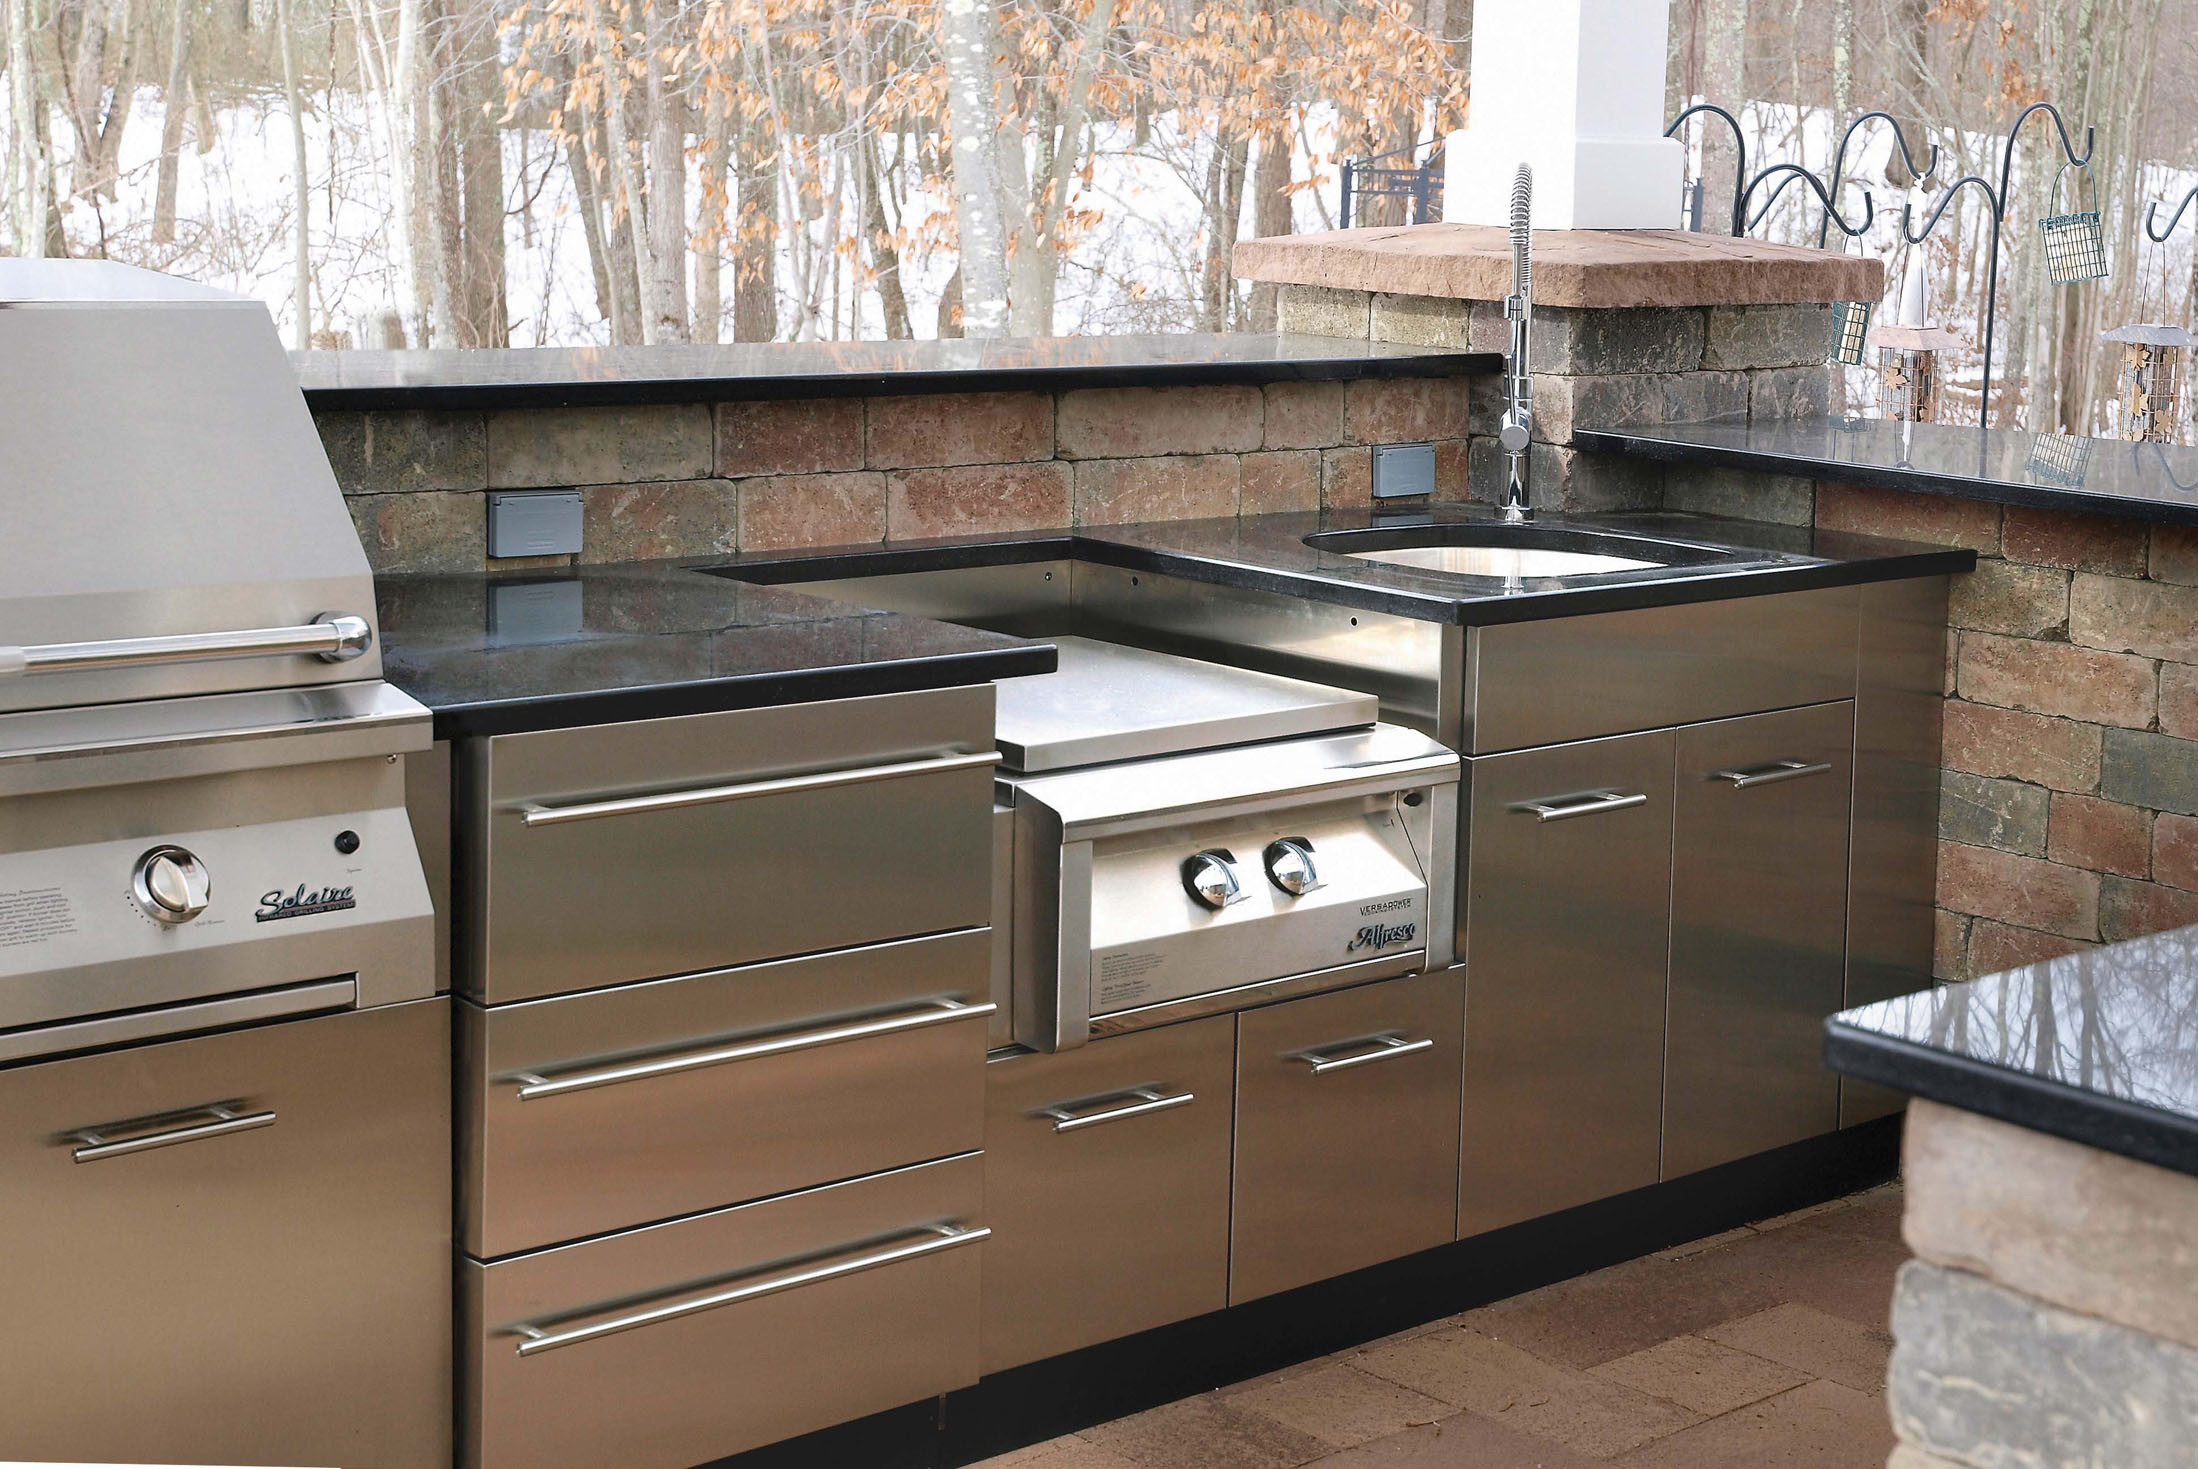 Stainless Outdoor Kitchen  Outdoor Stainless Kitchen in winter in CT